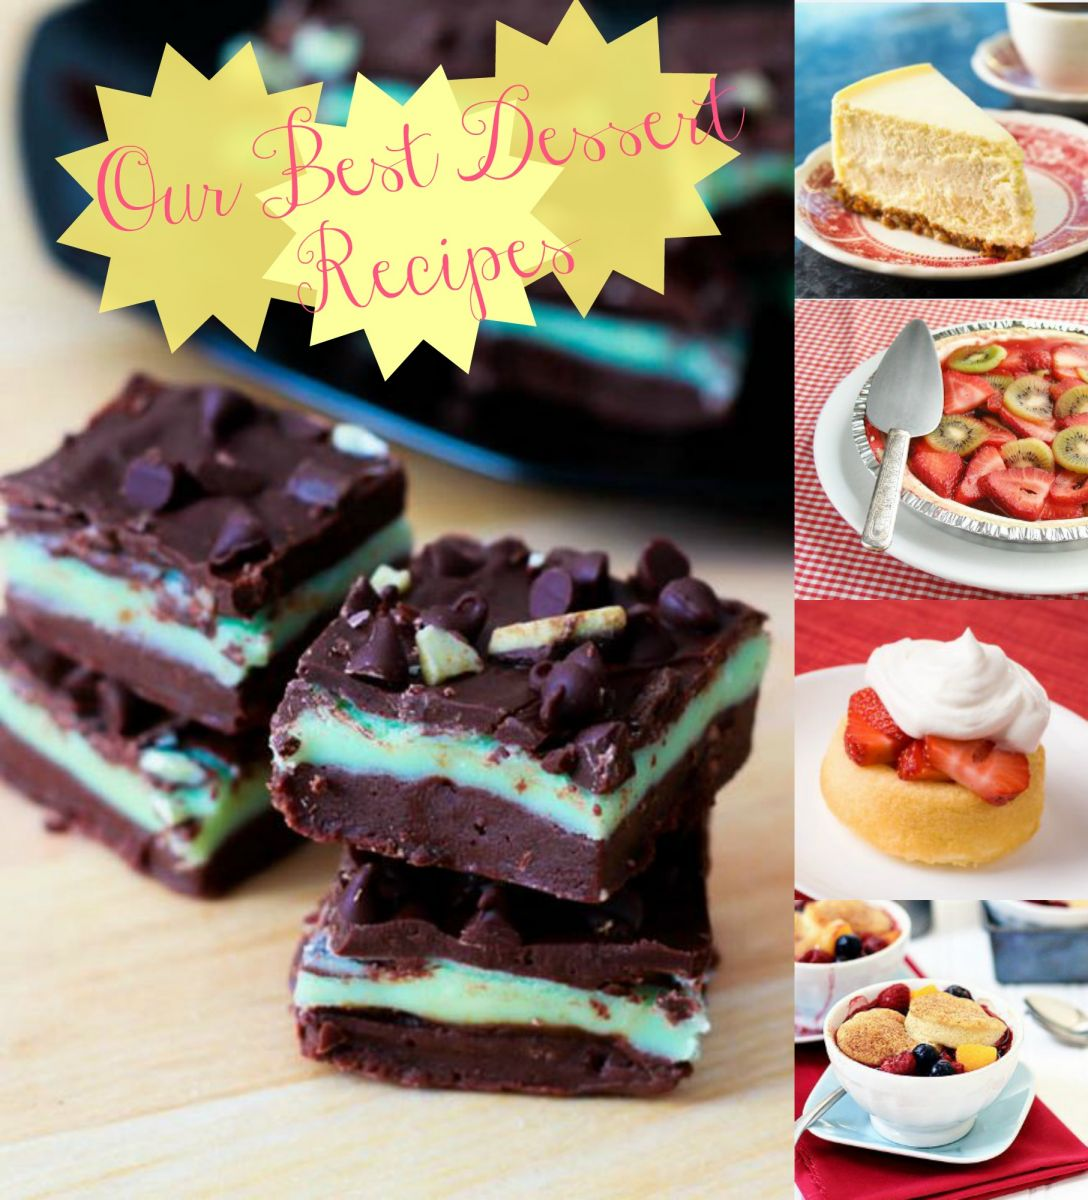 Get The Cooking Help When You Want It Our-Best-Dessert-Recipes